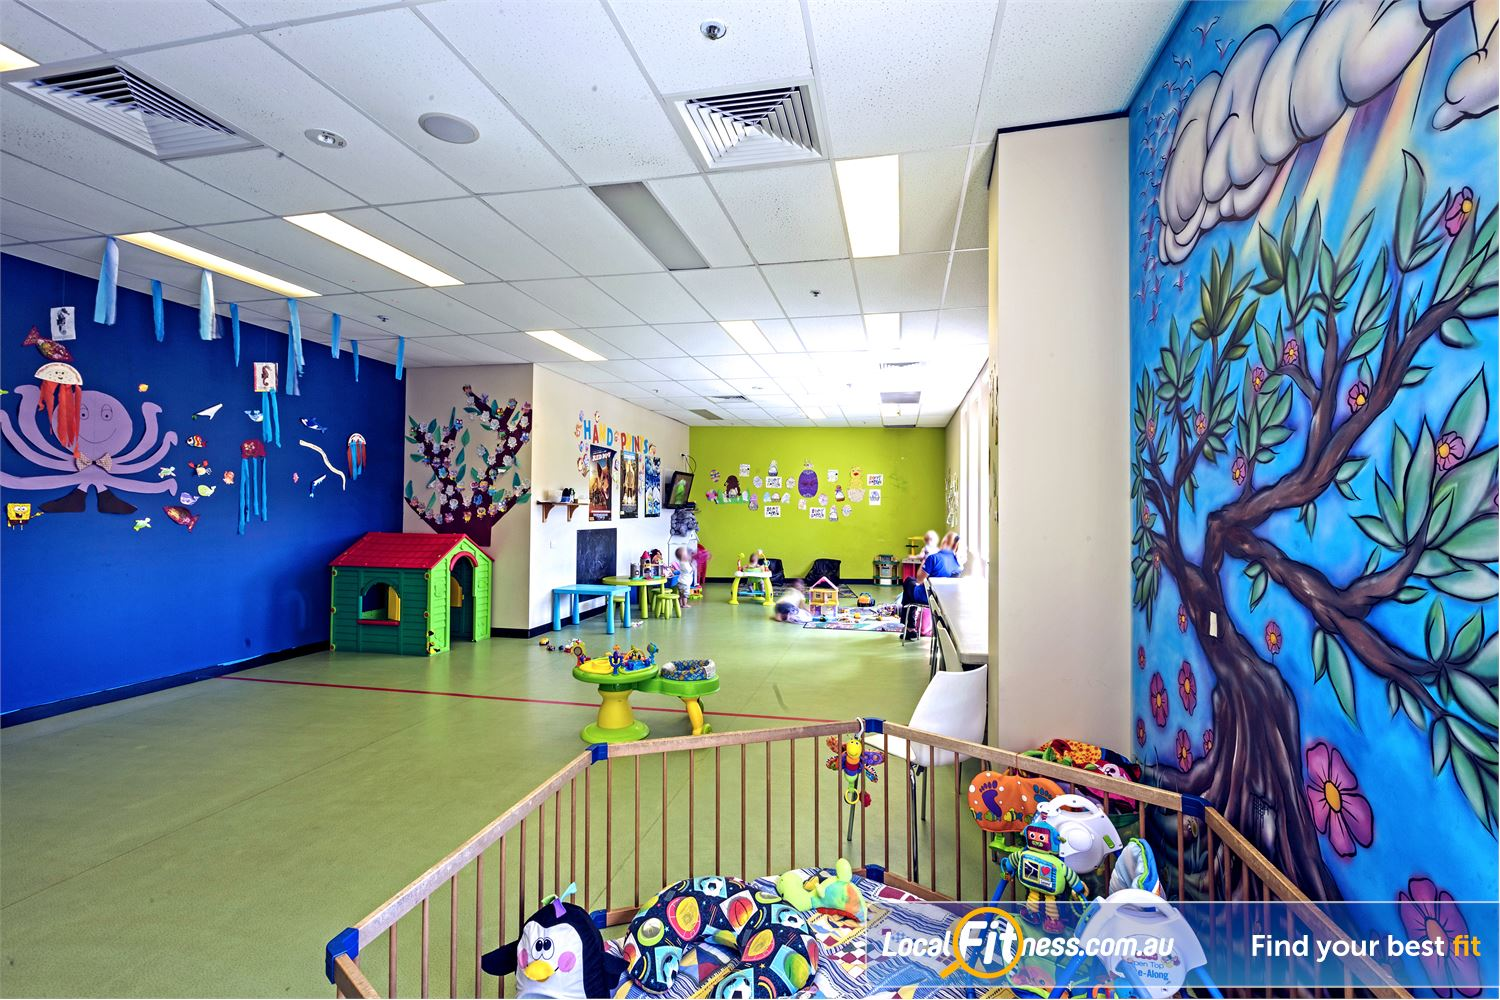 Goodlife Health Clubs Helensvale Helensvale child minding is part of our family friendly gym environment.